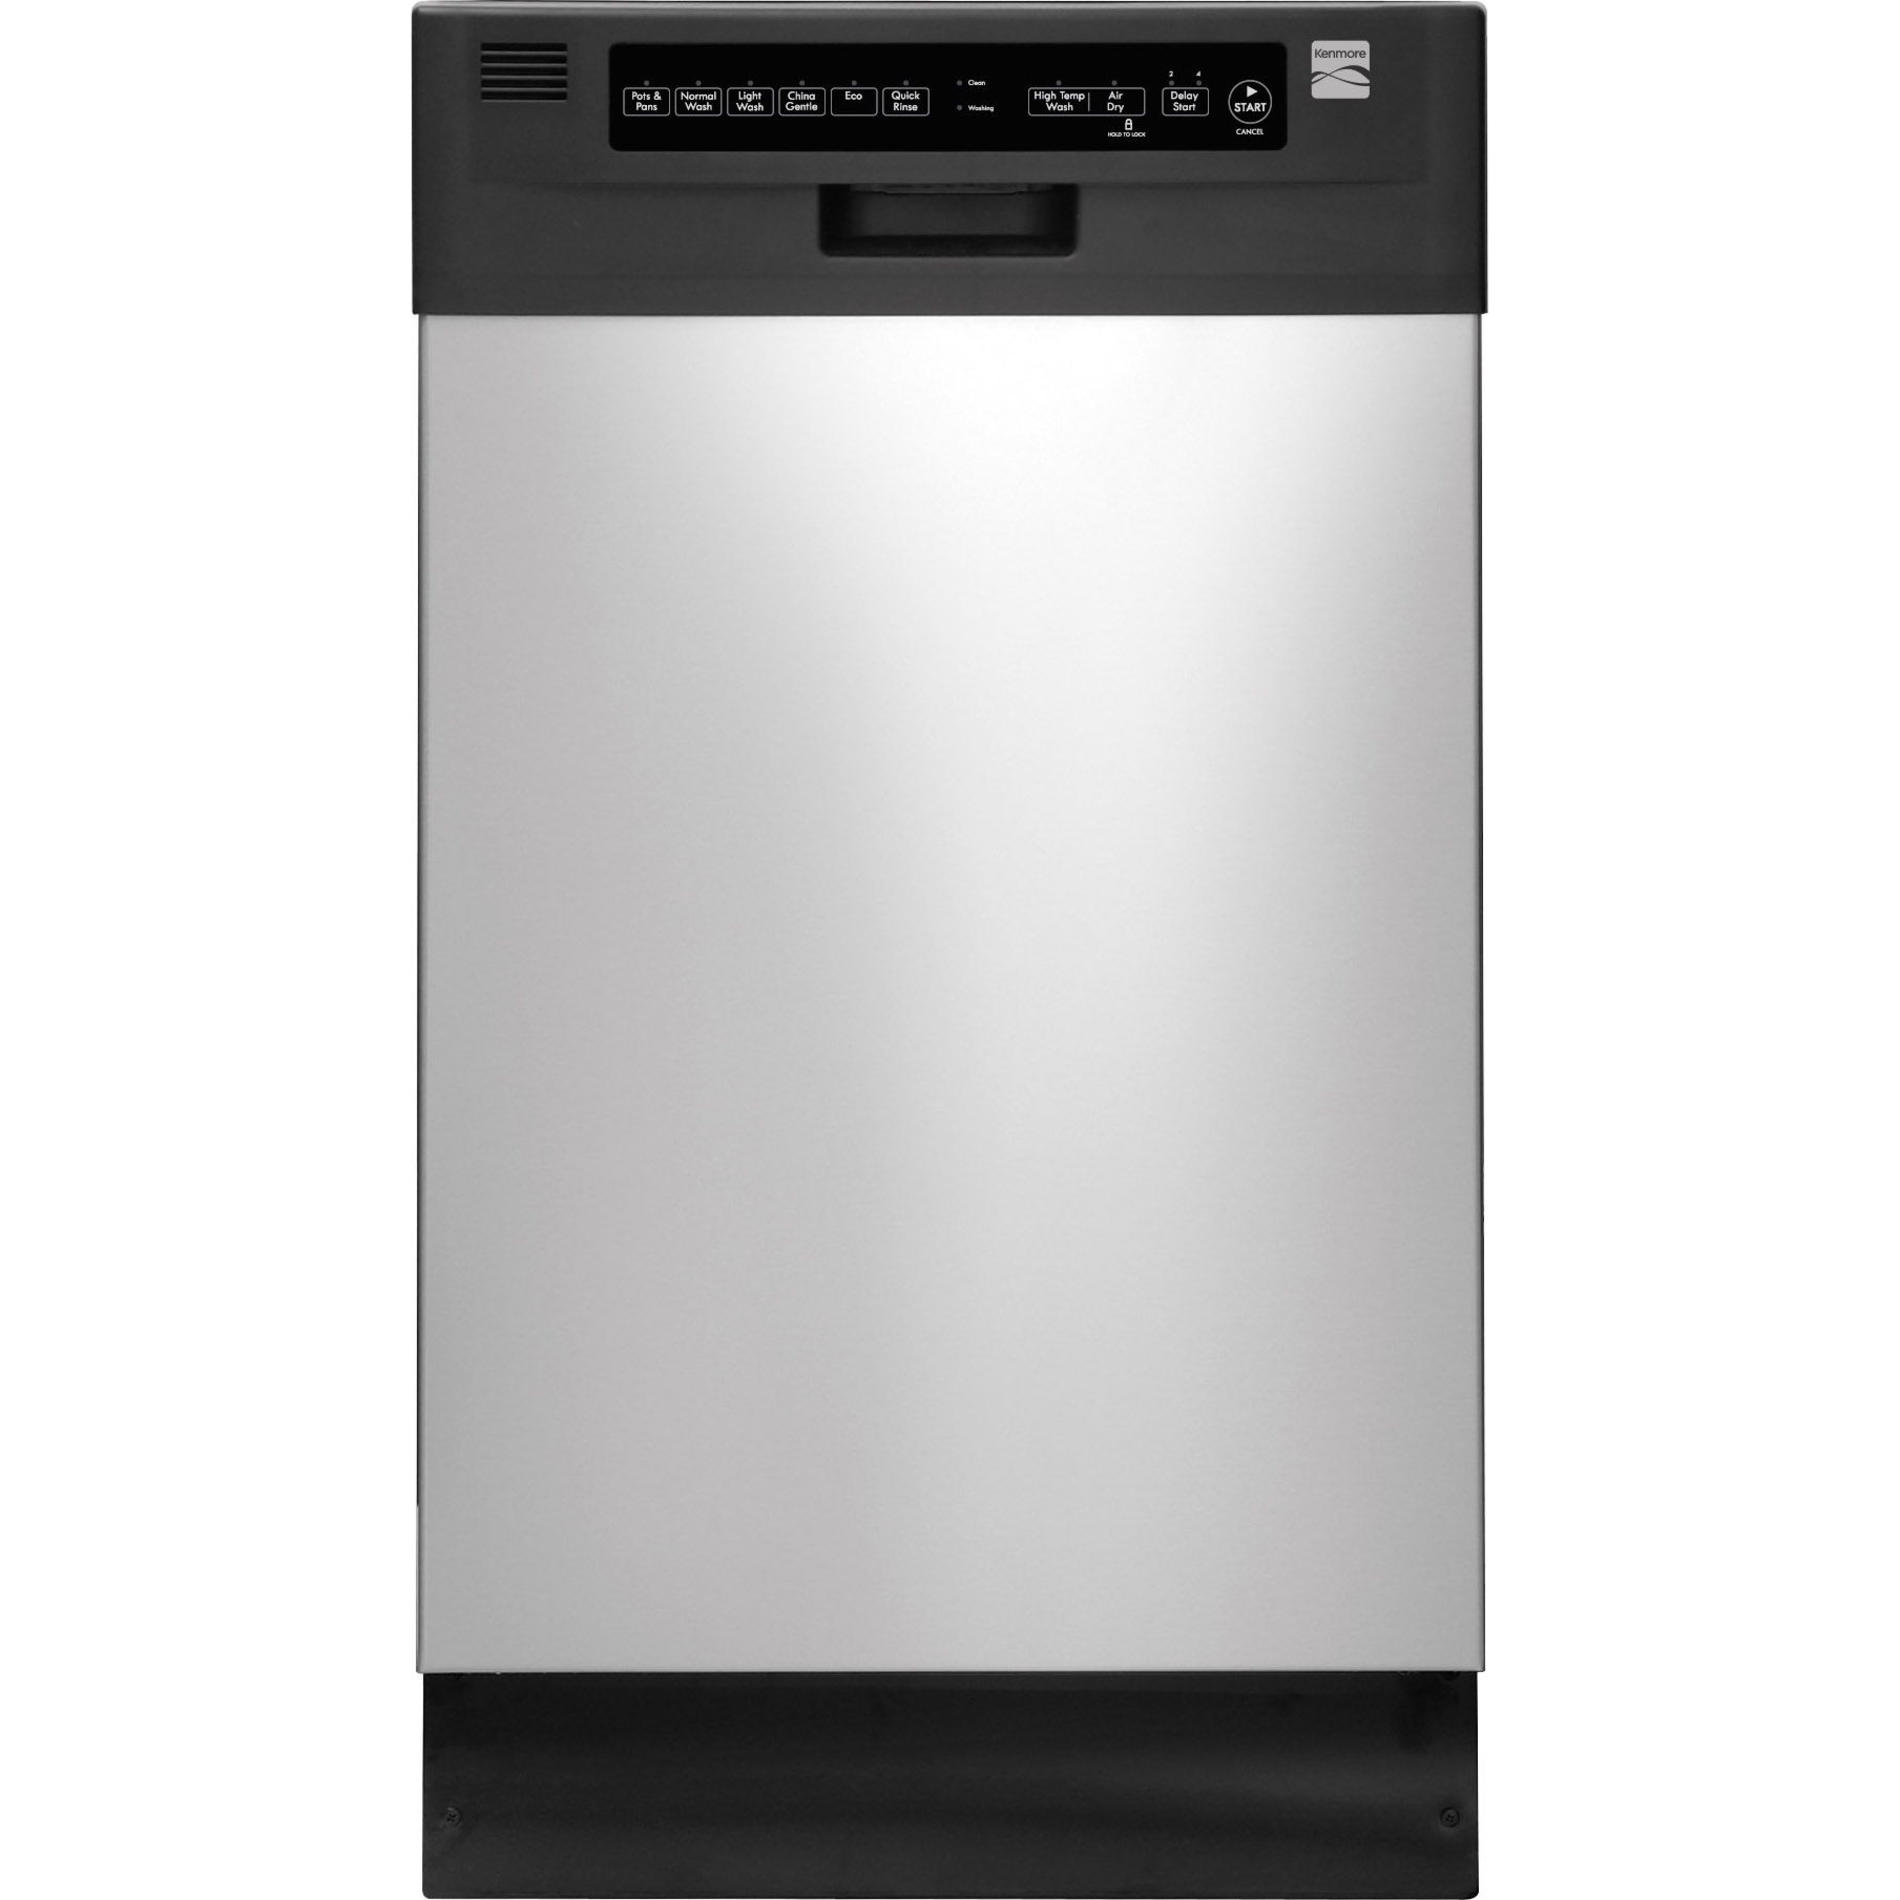 Kenmore 14663 18 Built-In Dishwasher - Stainless Steel